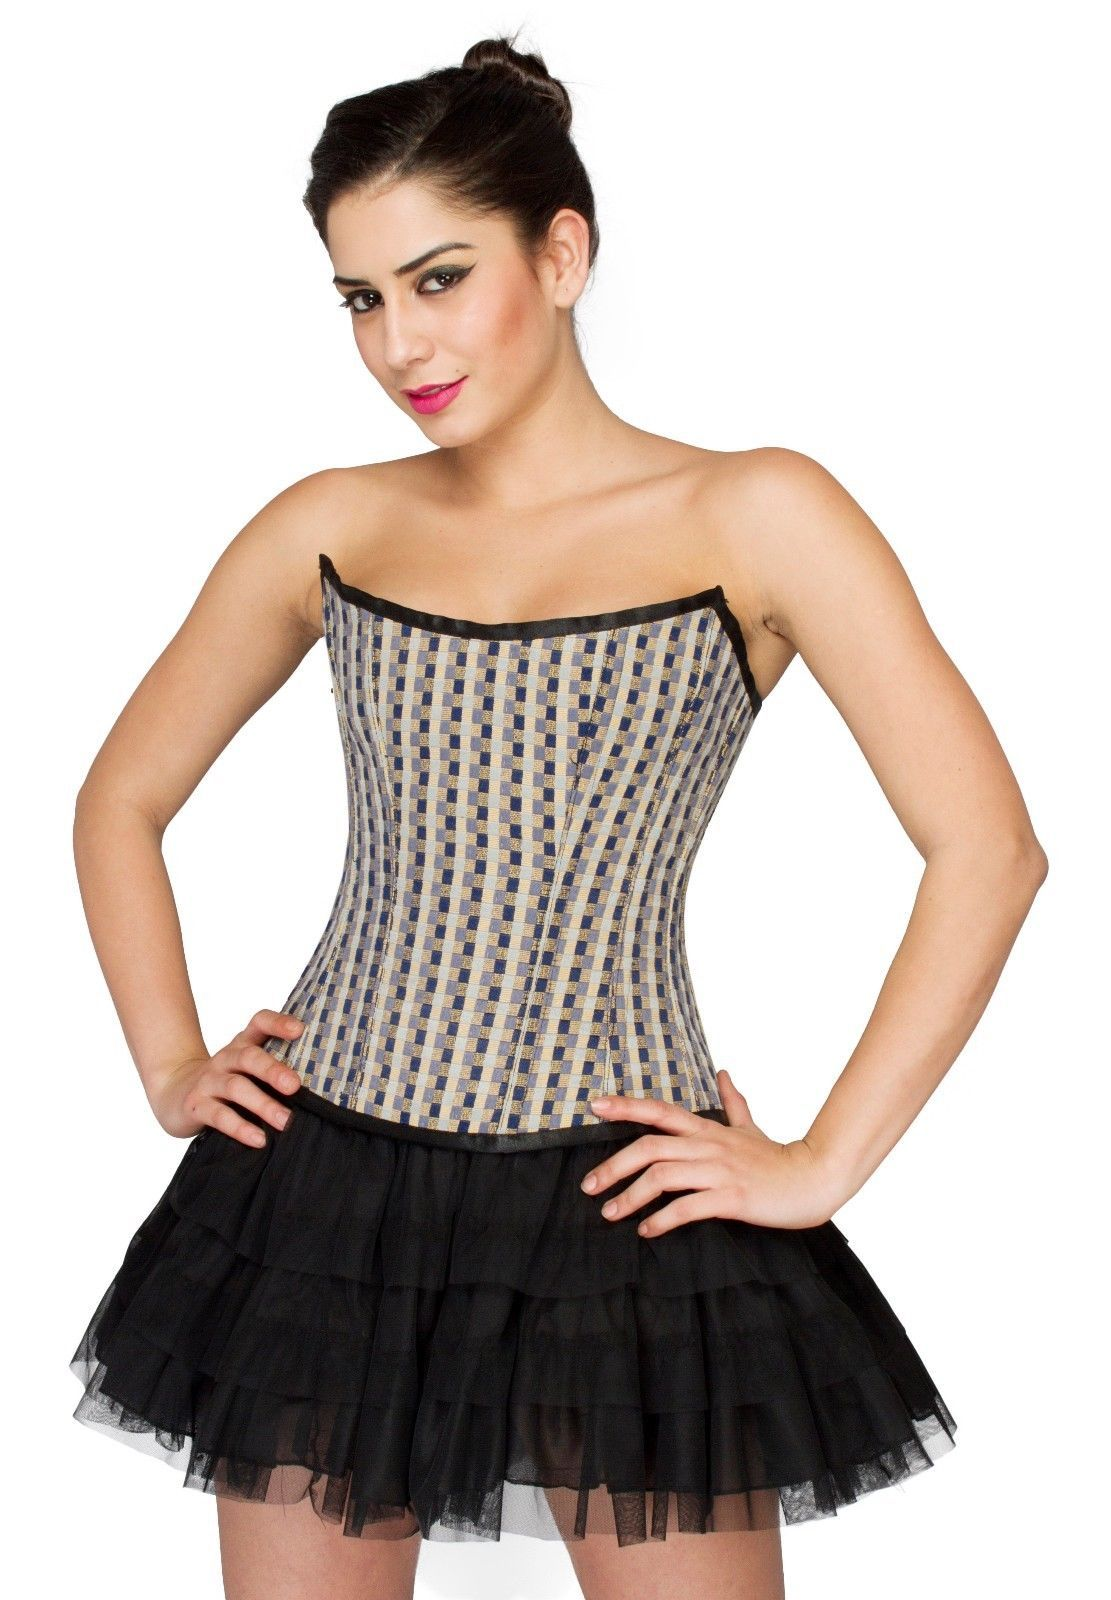 Black White Check Polyester Overbust Top &Tutu Skirt PLUS SIZE Corset Prom Dress